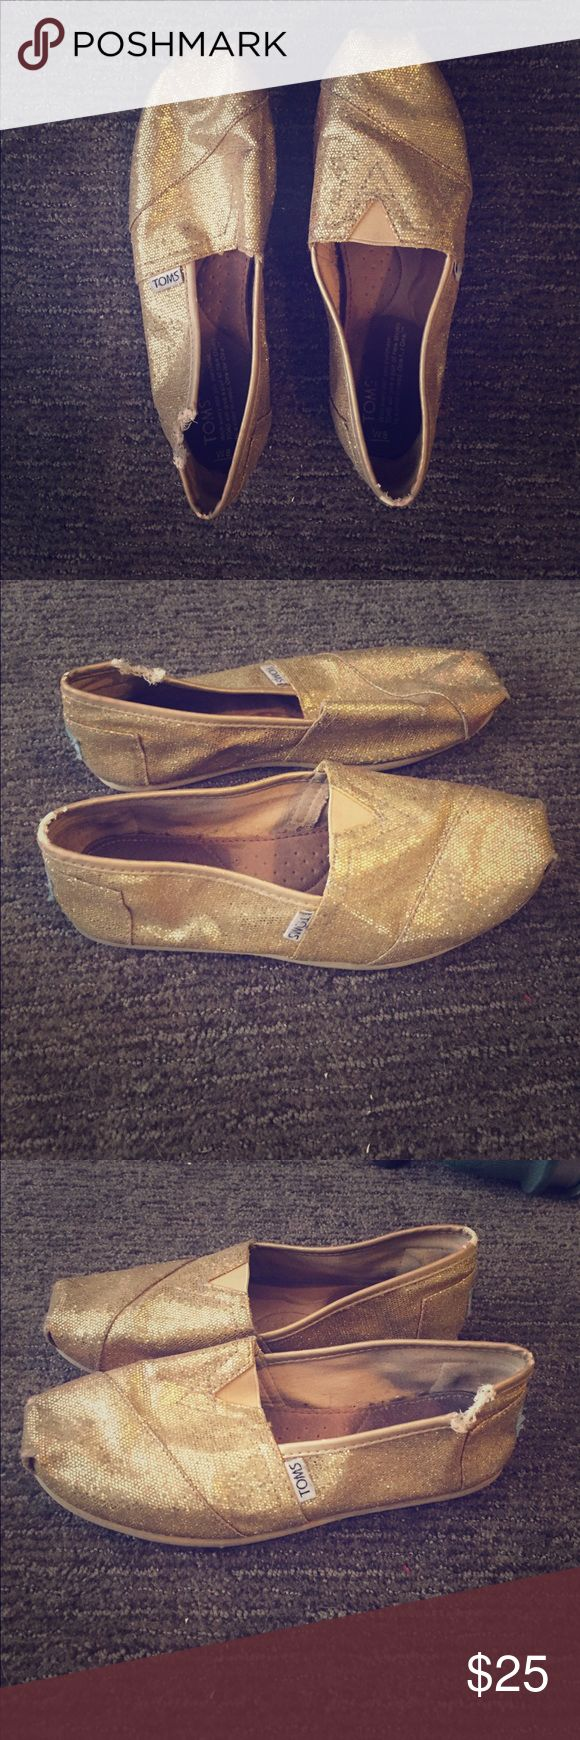 Gold glitter toms size 8 good condition w/ hole Gold glitter toms size 8 good condition w/ hole TOMS Shoes Flats & Loafers